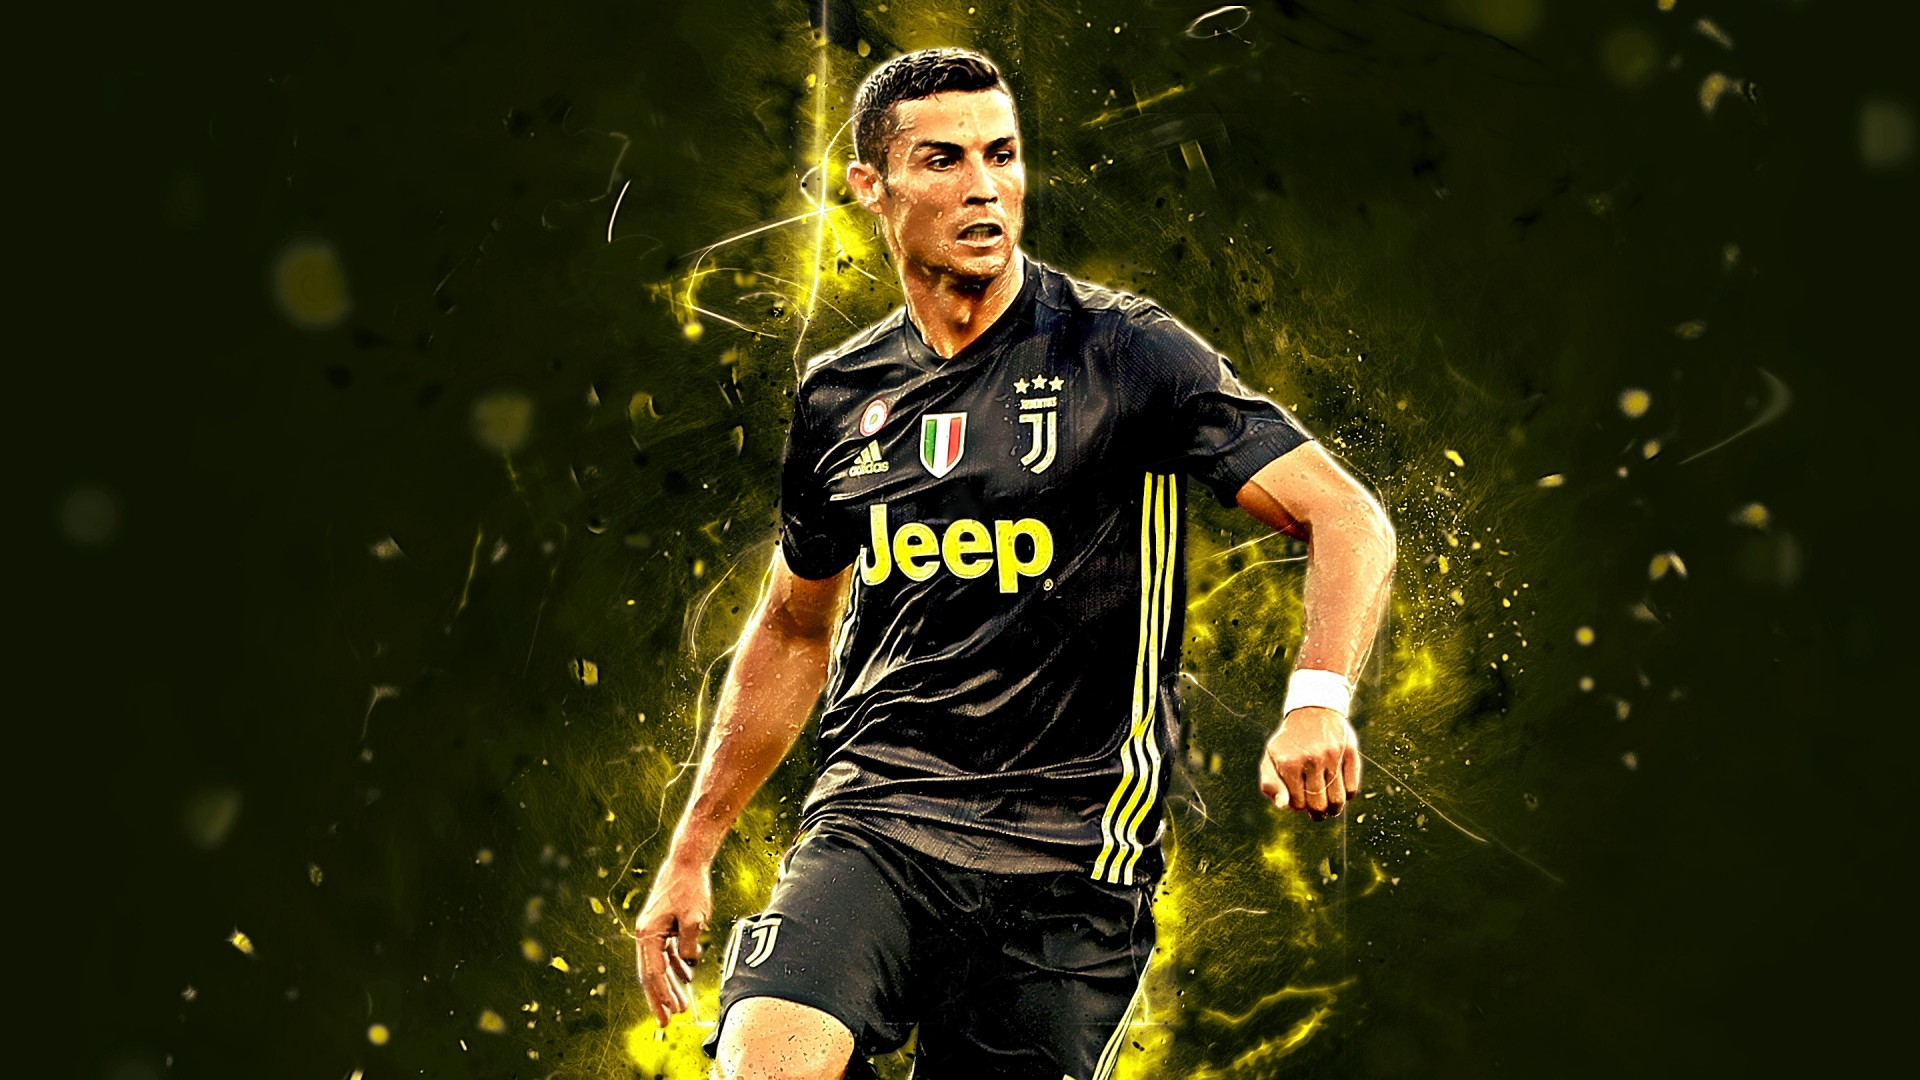 Cristiano Ronaldo Wallpapers  HD Wallpapers  ID 26365